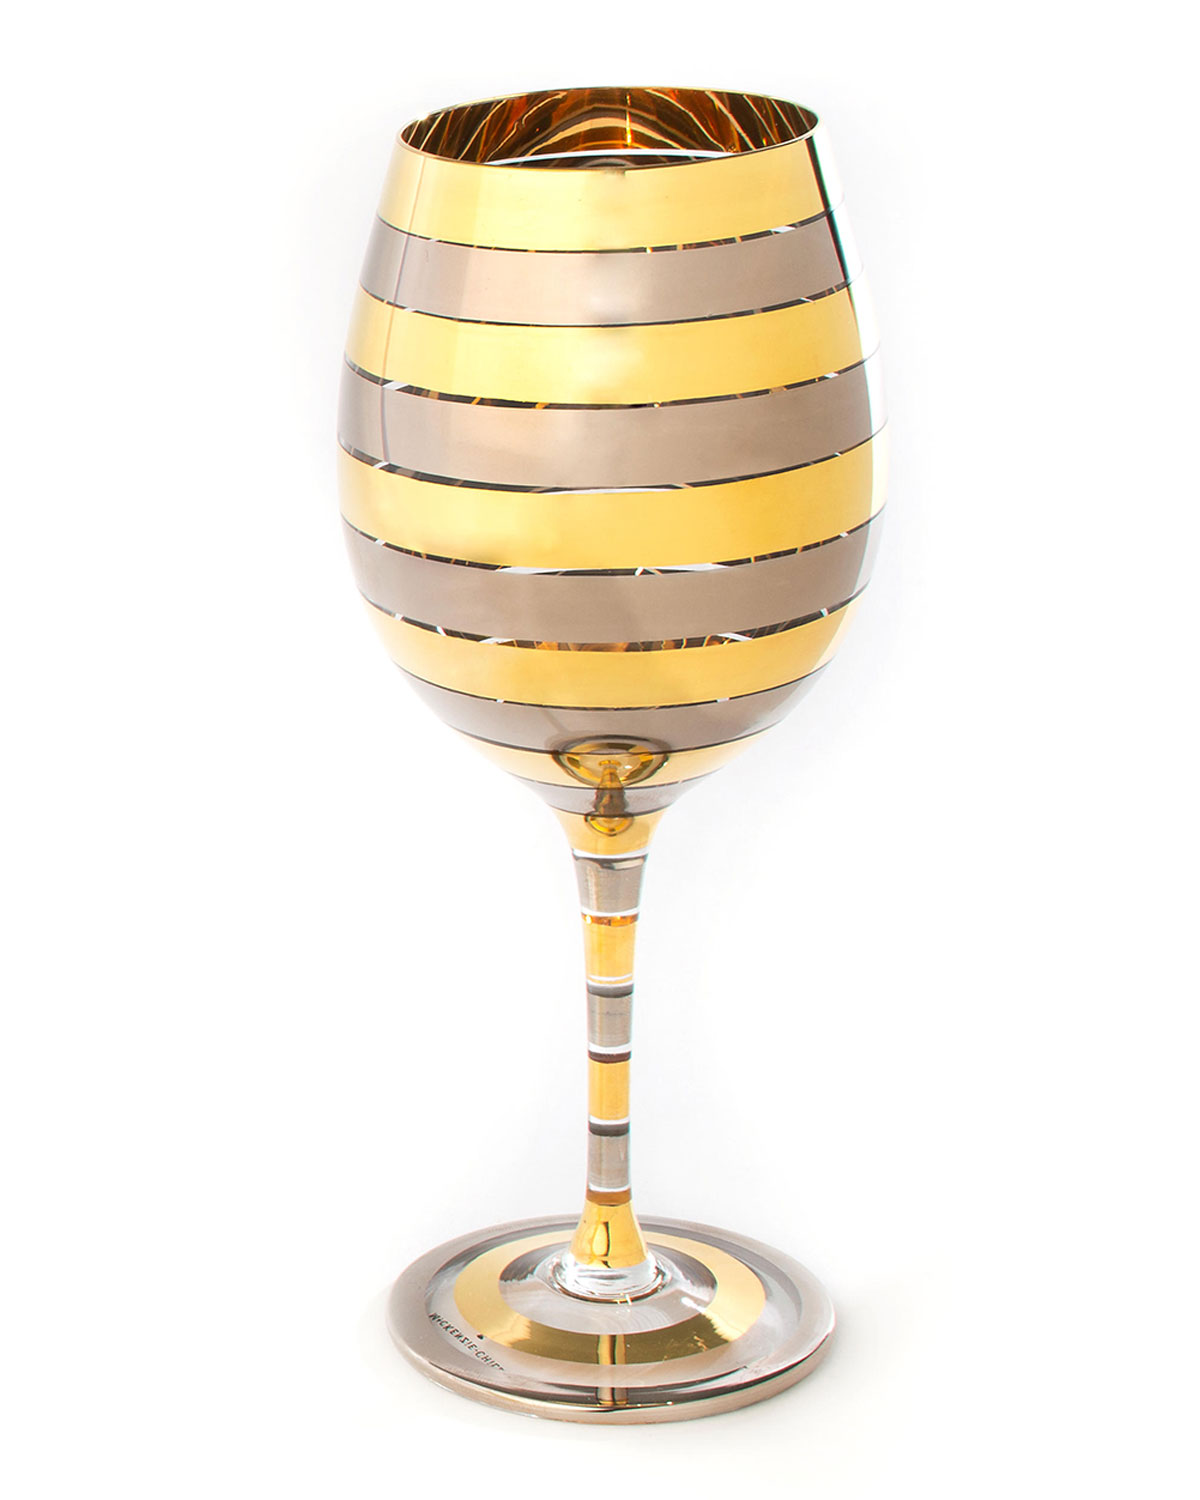 Mackenzie-Childs GOLDEN HOUR WHITE WINE GLASS